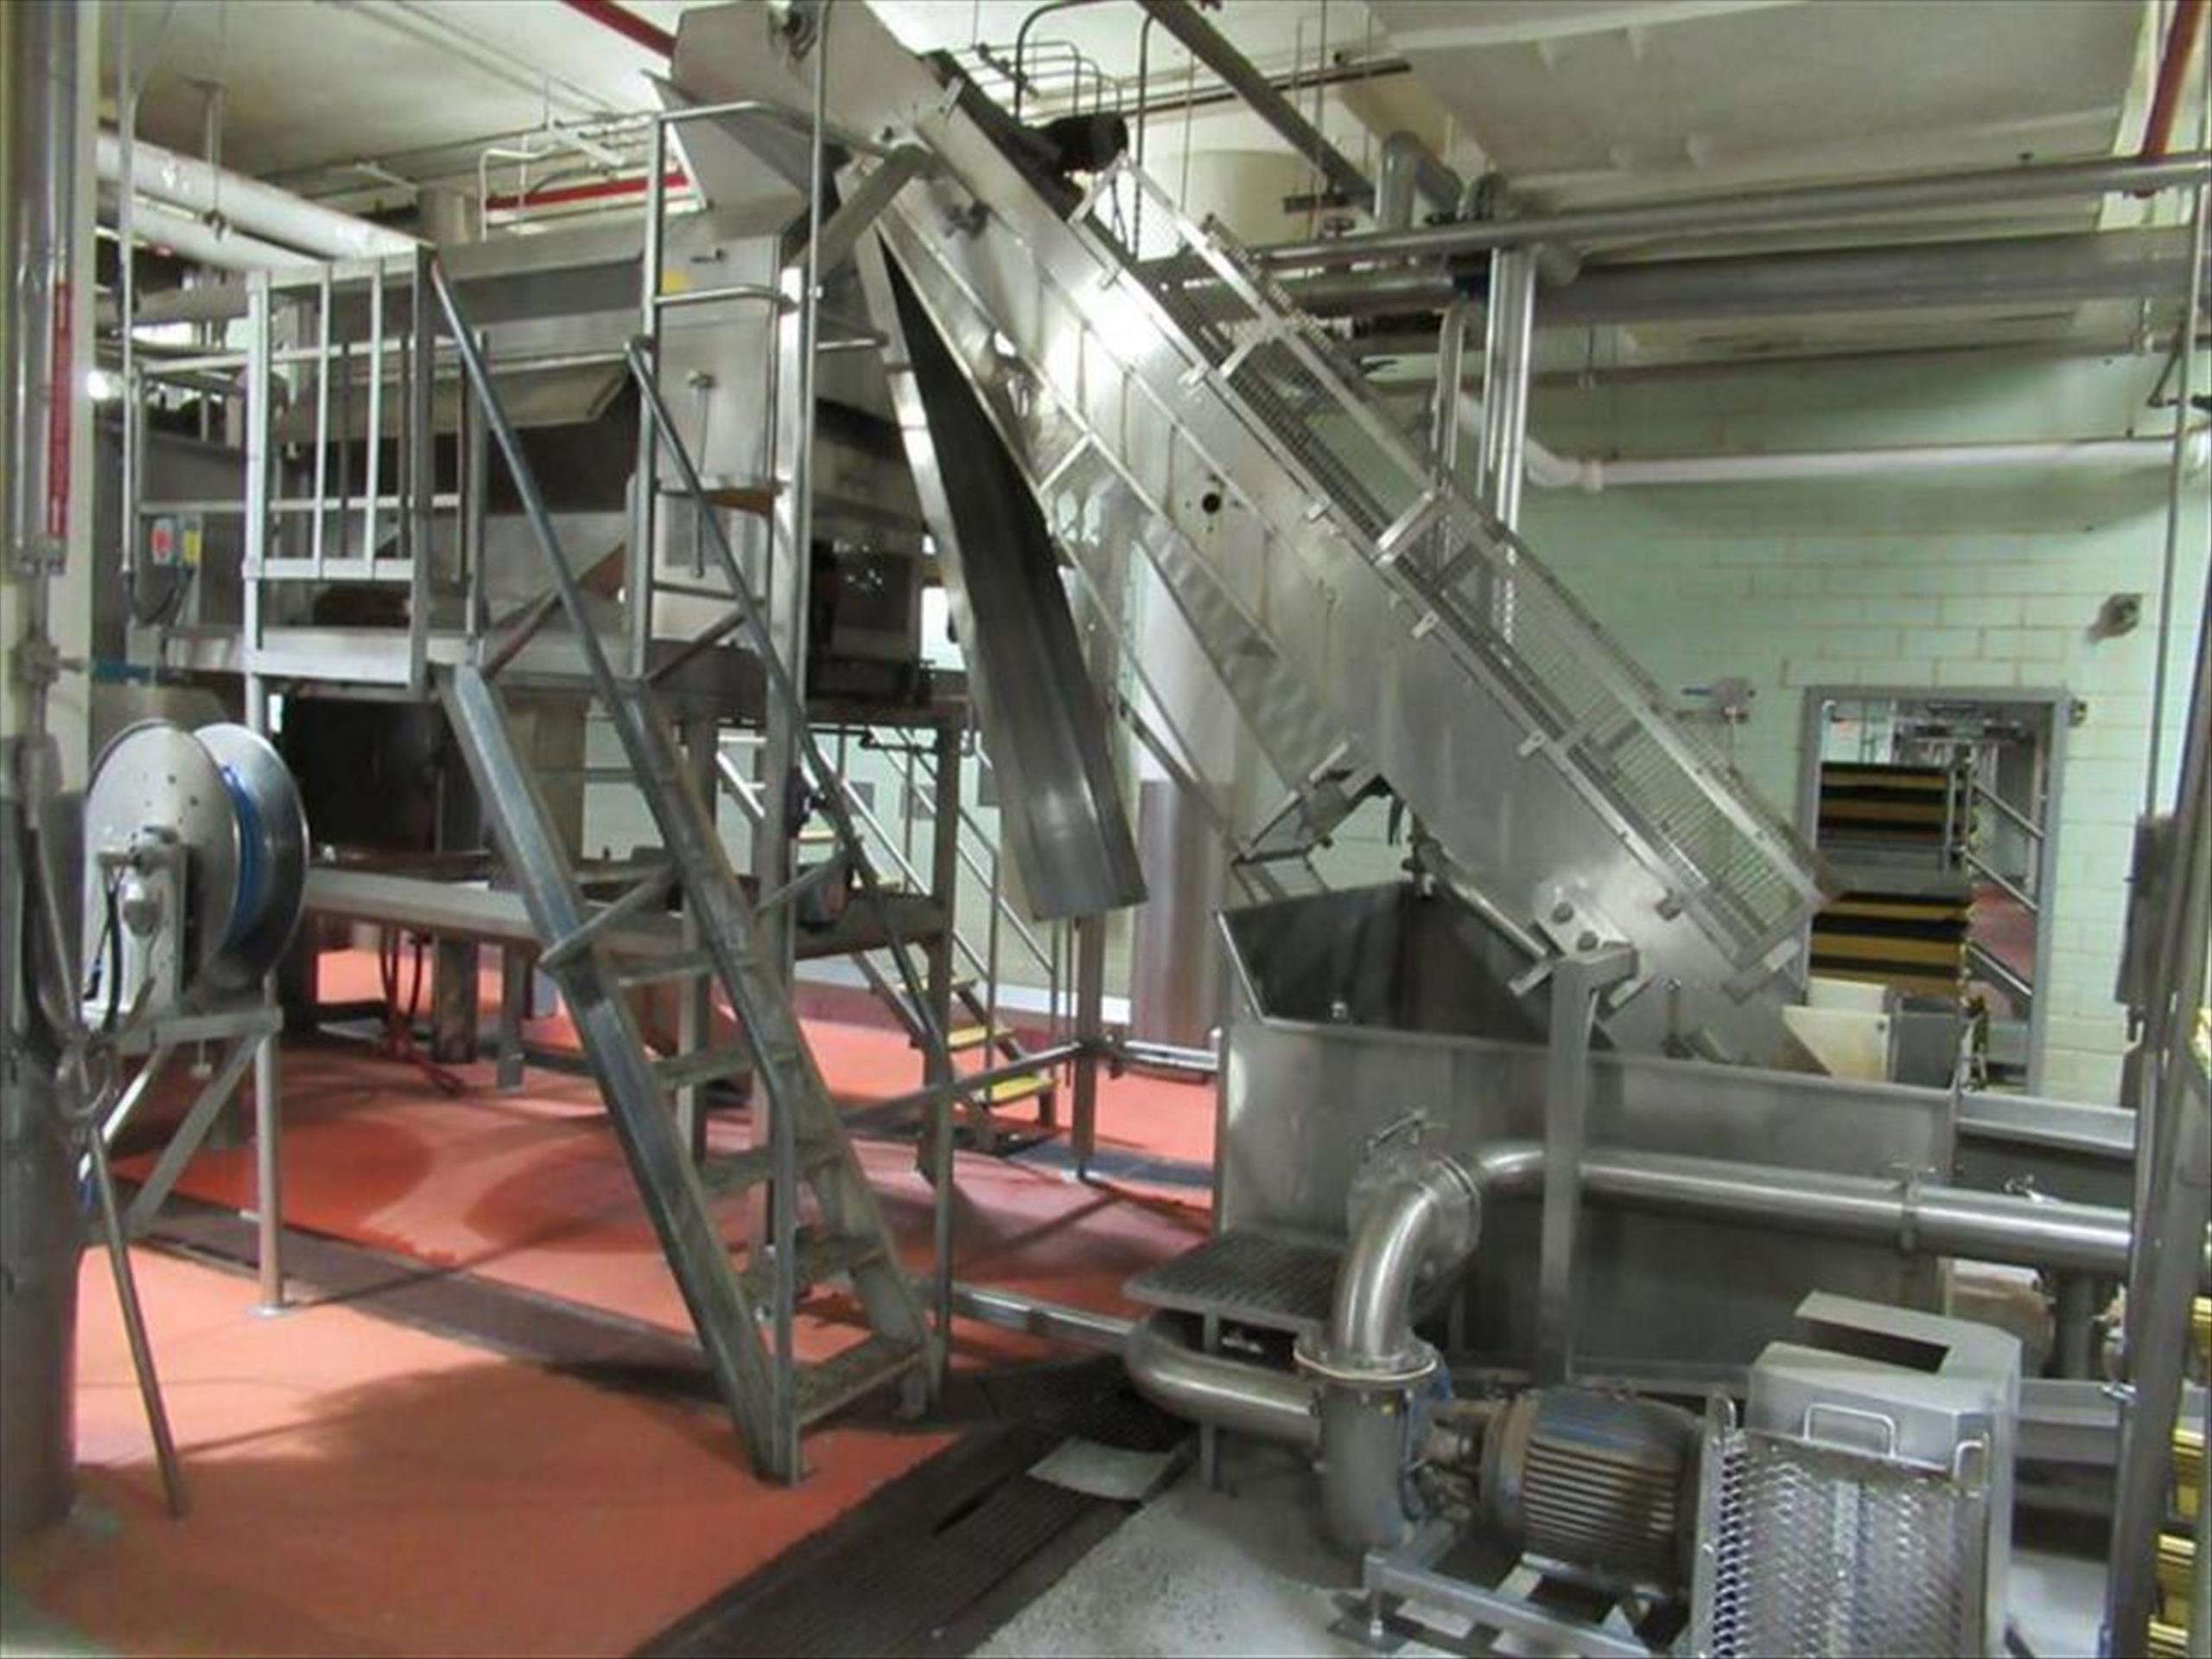 Dewatering / destoner wash tank system include 24 in w x 15 ft l x 14 ft h elevating conveyor with